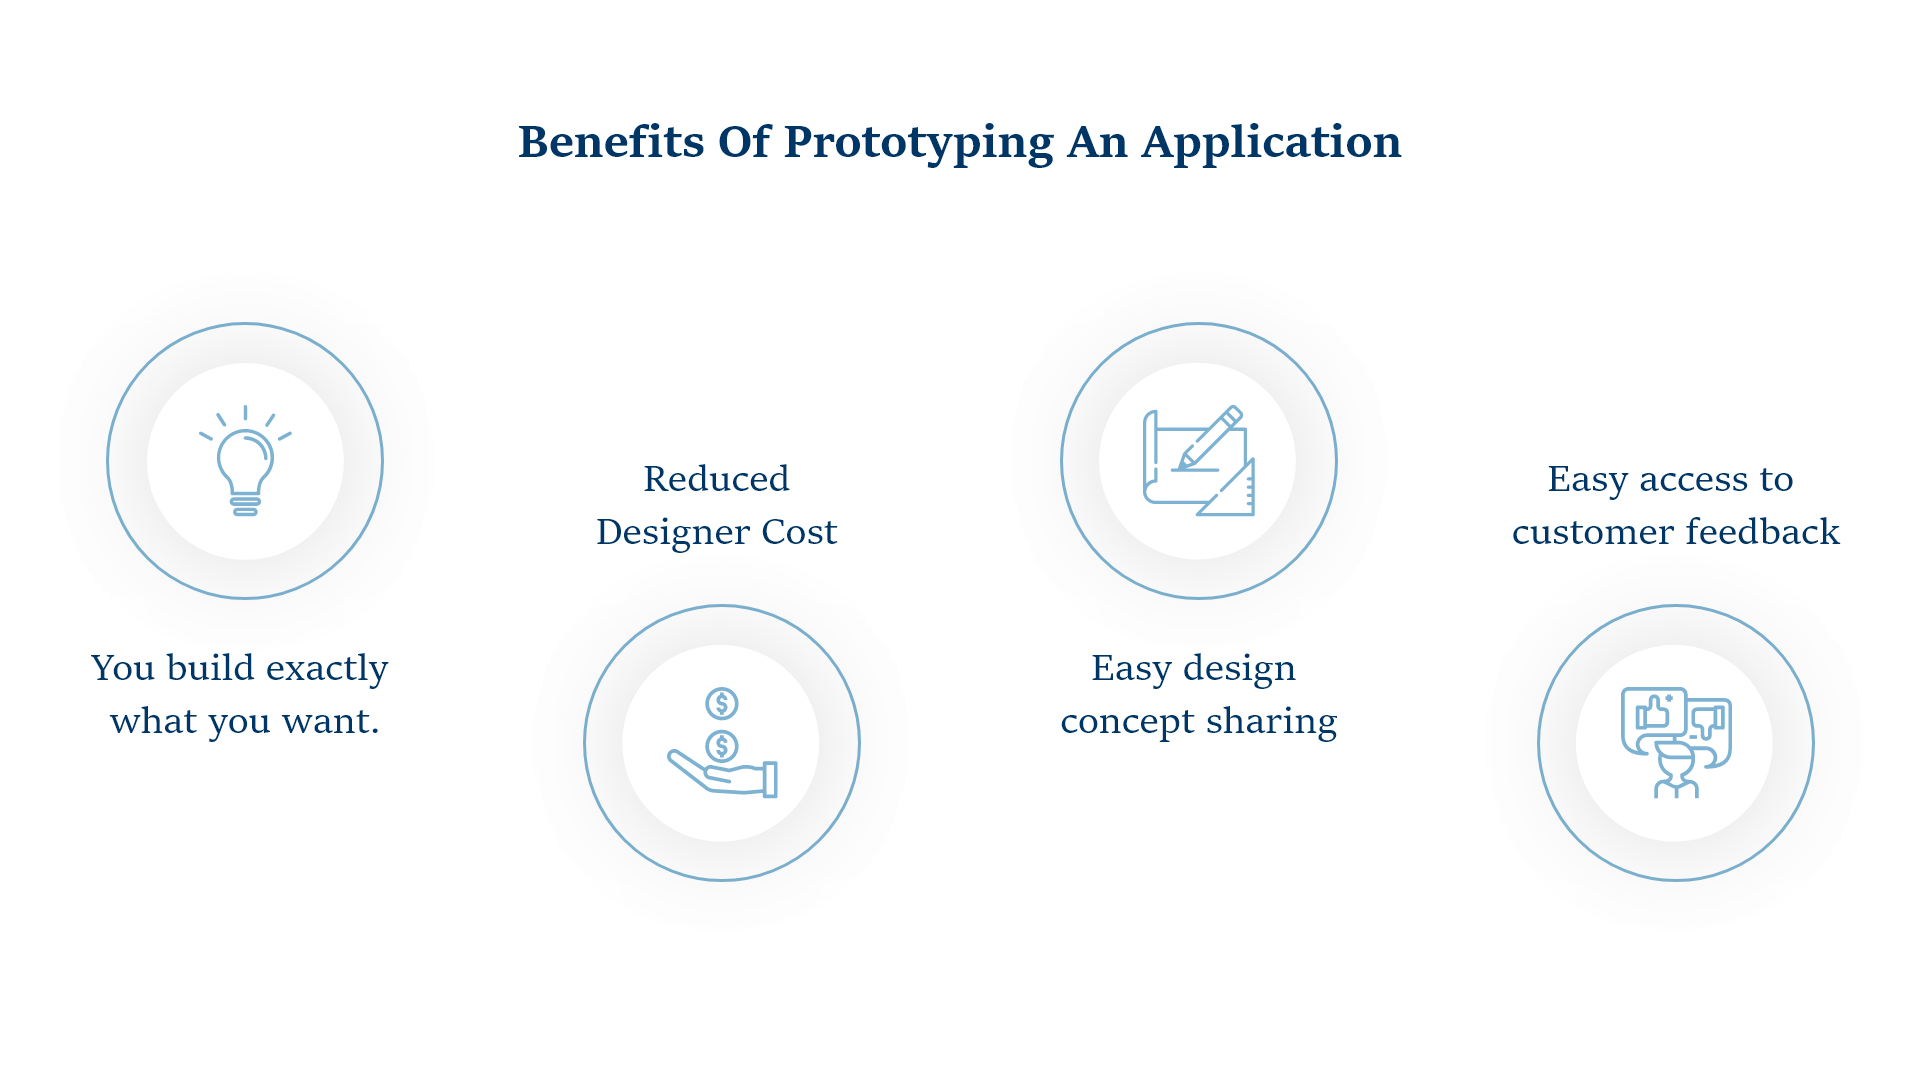 How to create a simple mobile app prototype